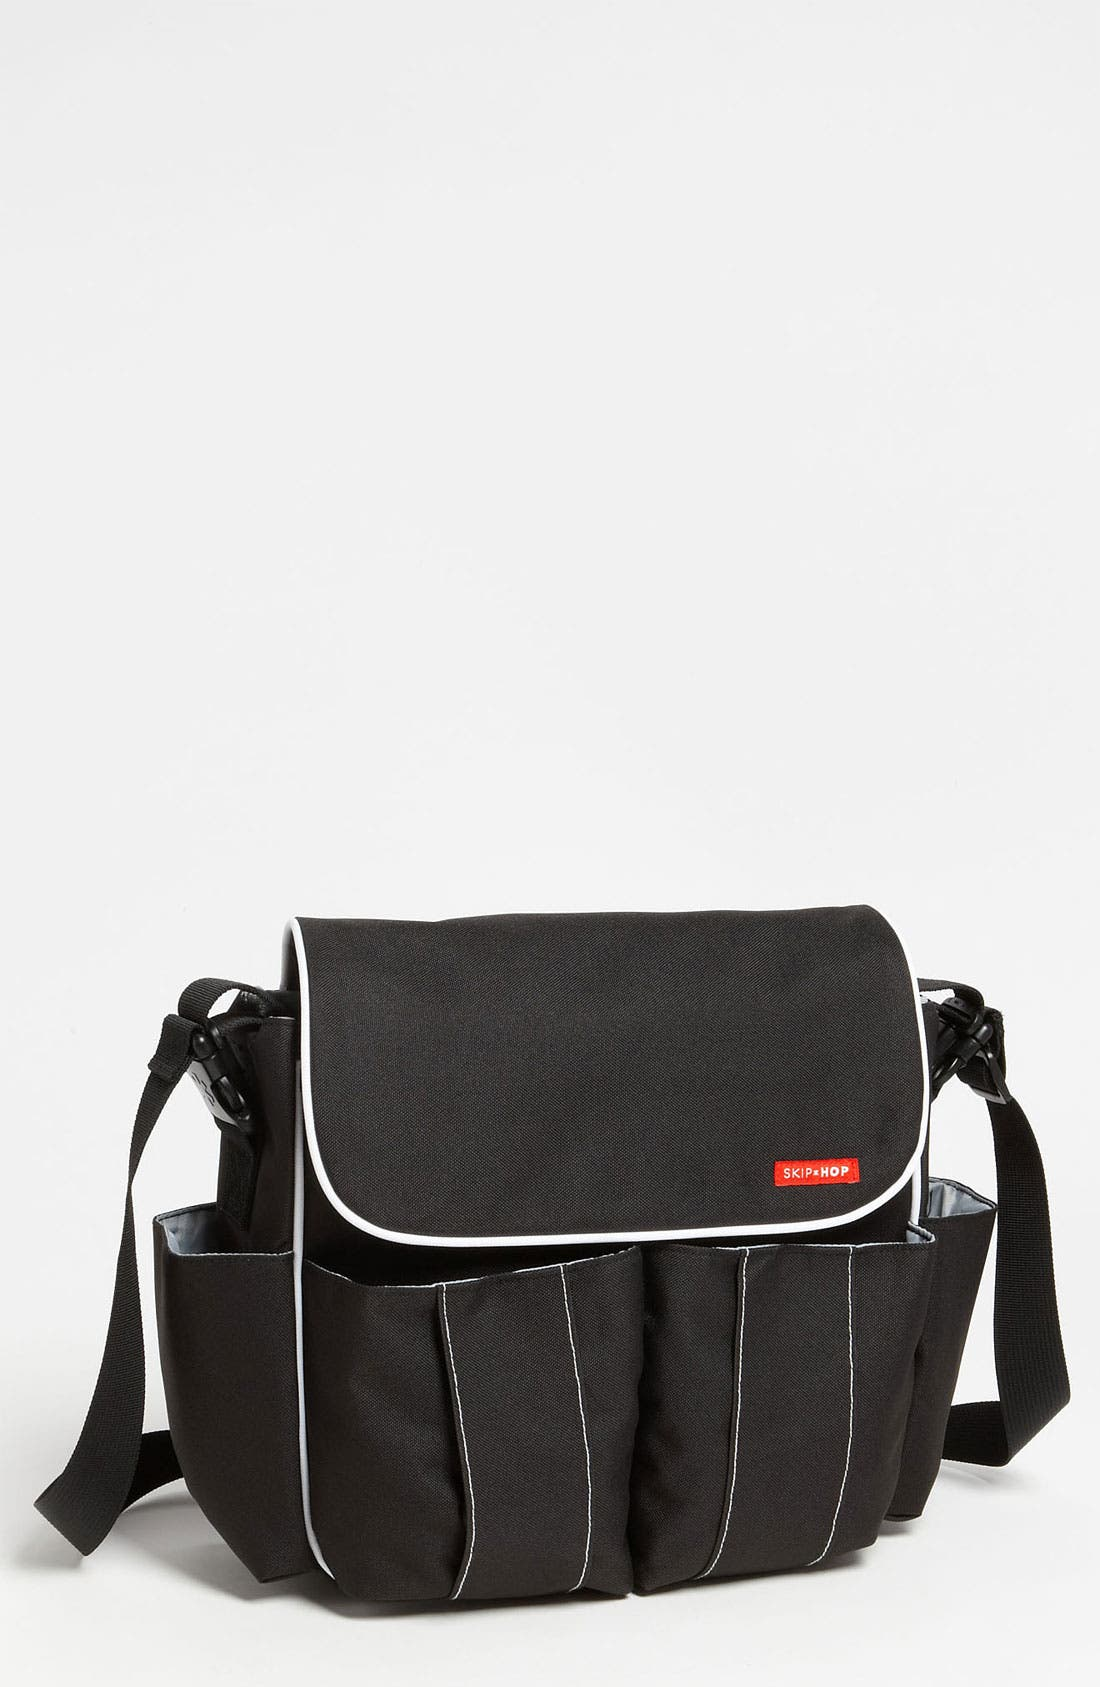 Alternate Image 1 Selected - Skip Hop 'Dash' Diaper Bag (Deluxe Edition)